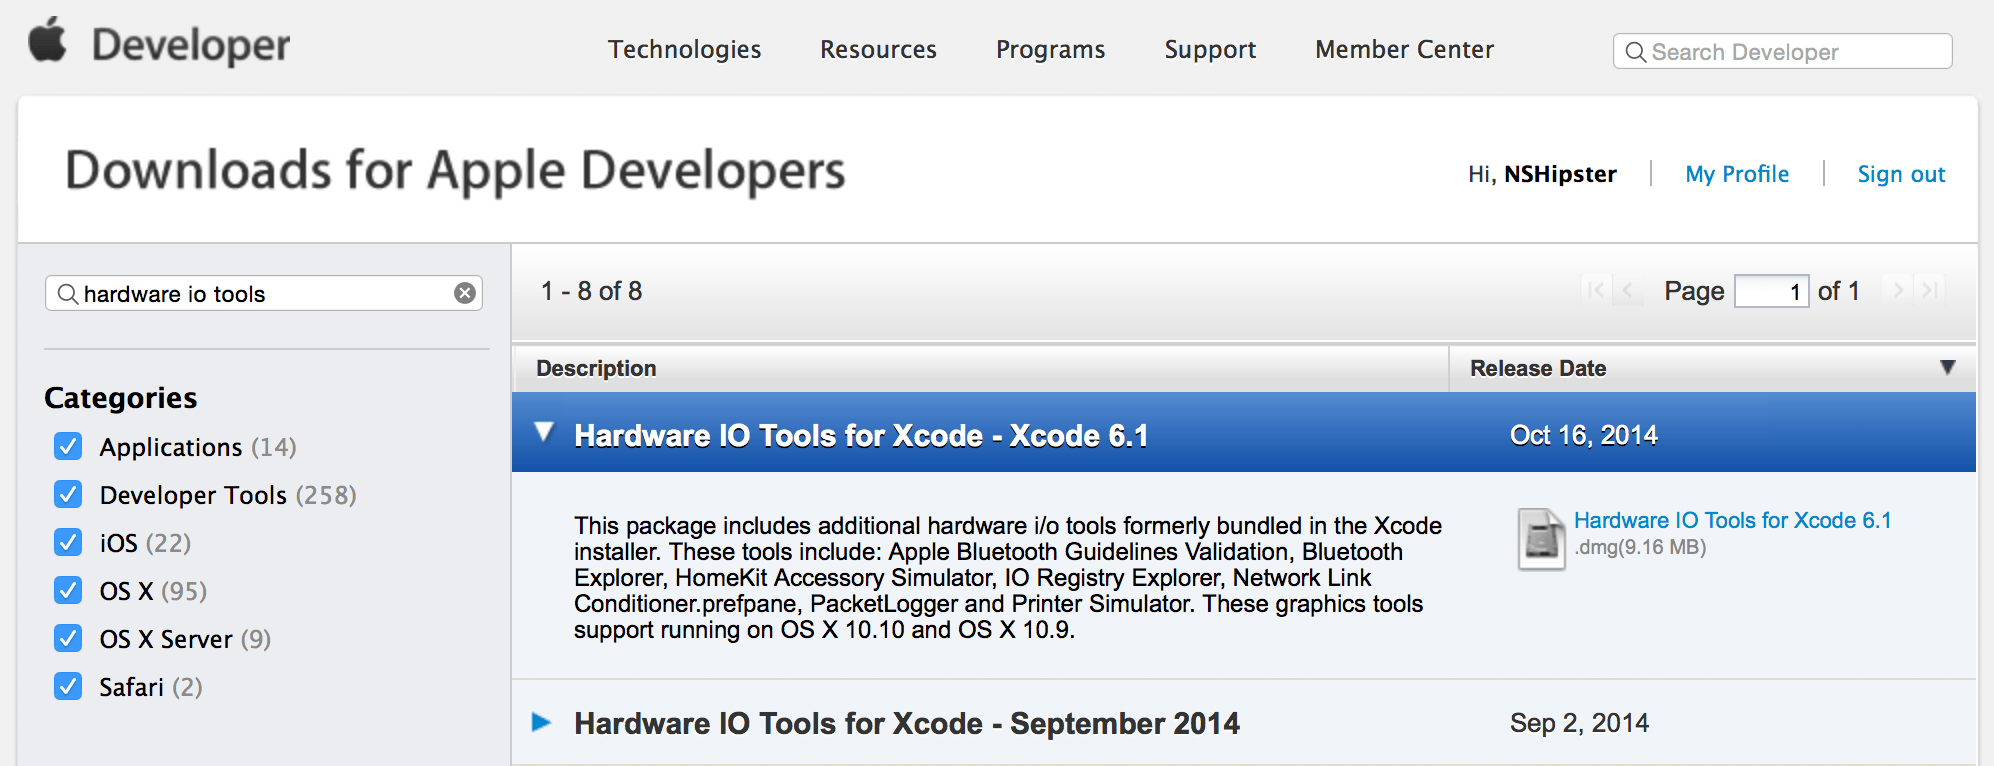 Download Hardware I/O Tools from Apple Developer Website